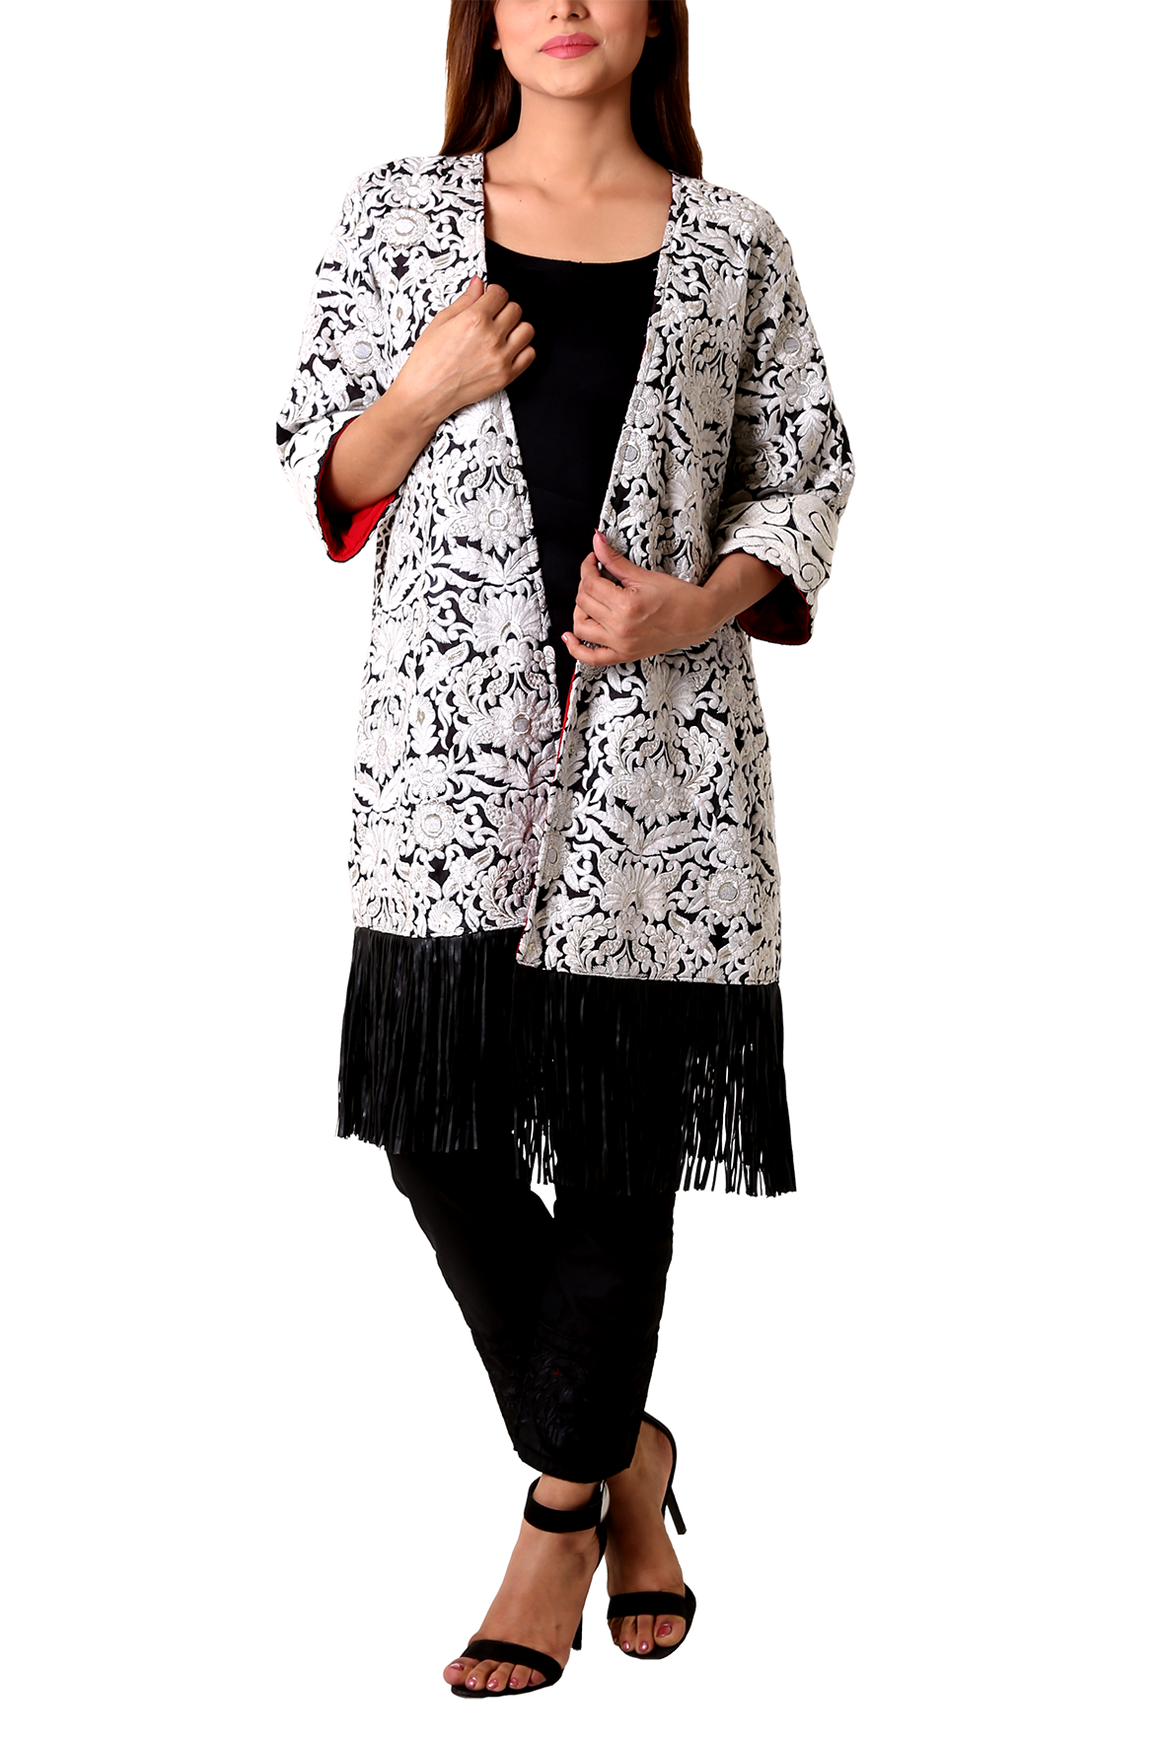 Mehreen Noorani - The Royal Coat Black & White Embroidered Gaara Cotton Silk Coat